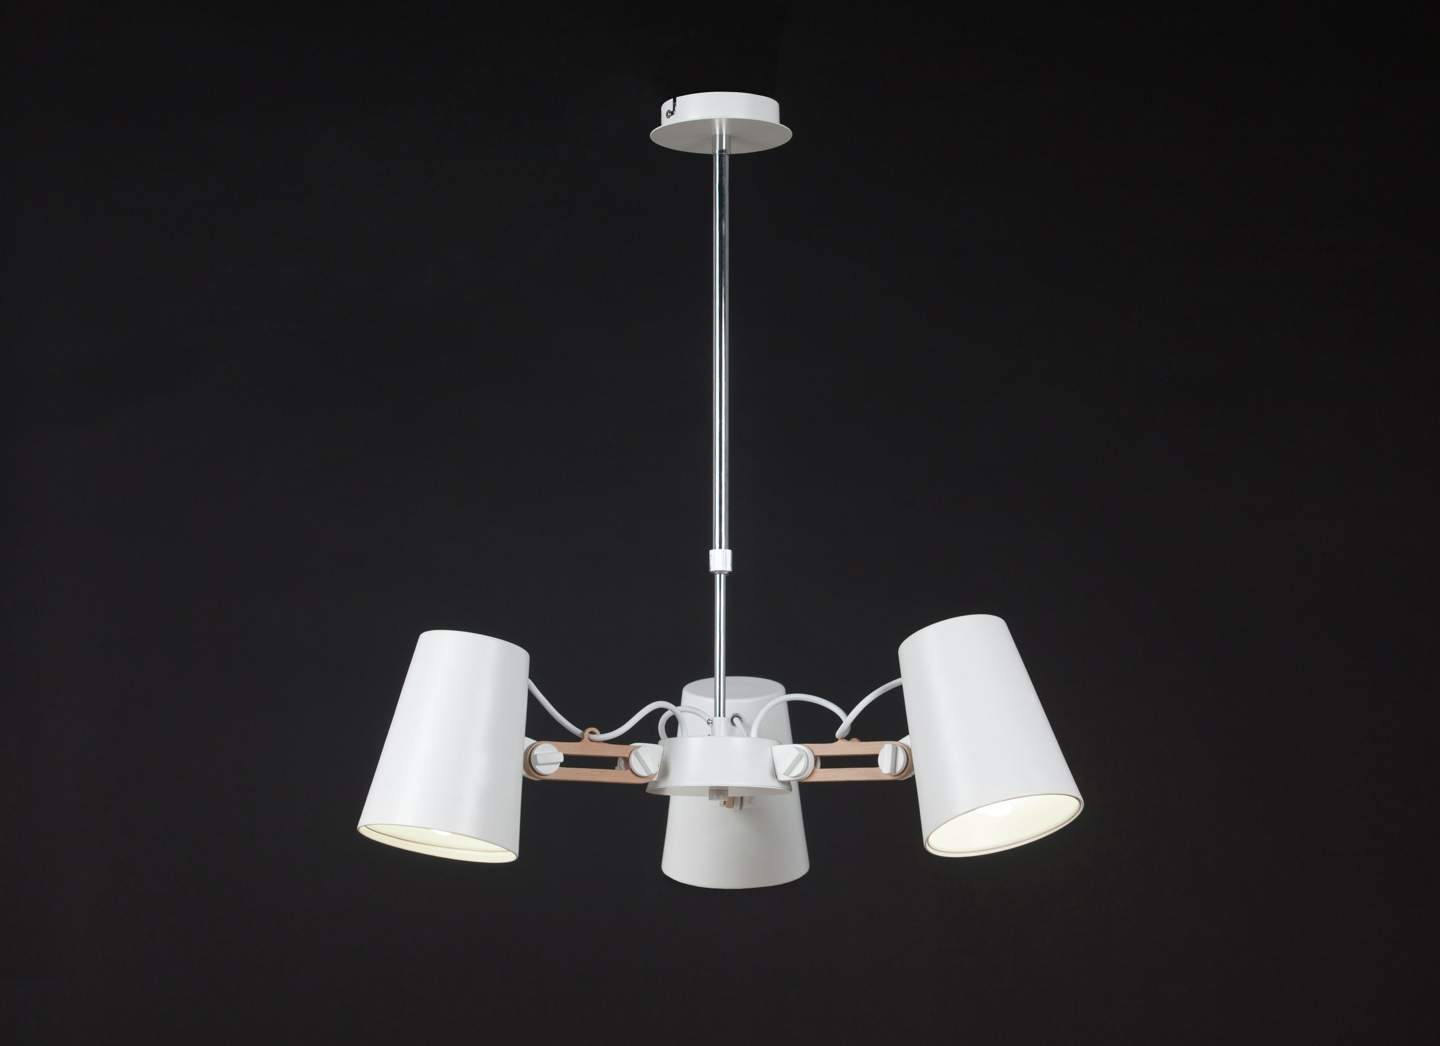 Looker Pendant Lamp 3L 3x15w E27 white/Wood/metal